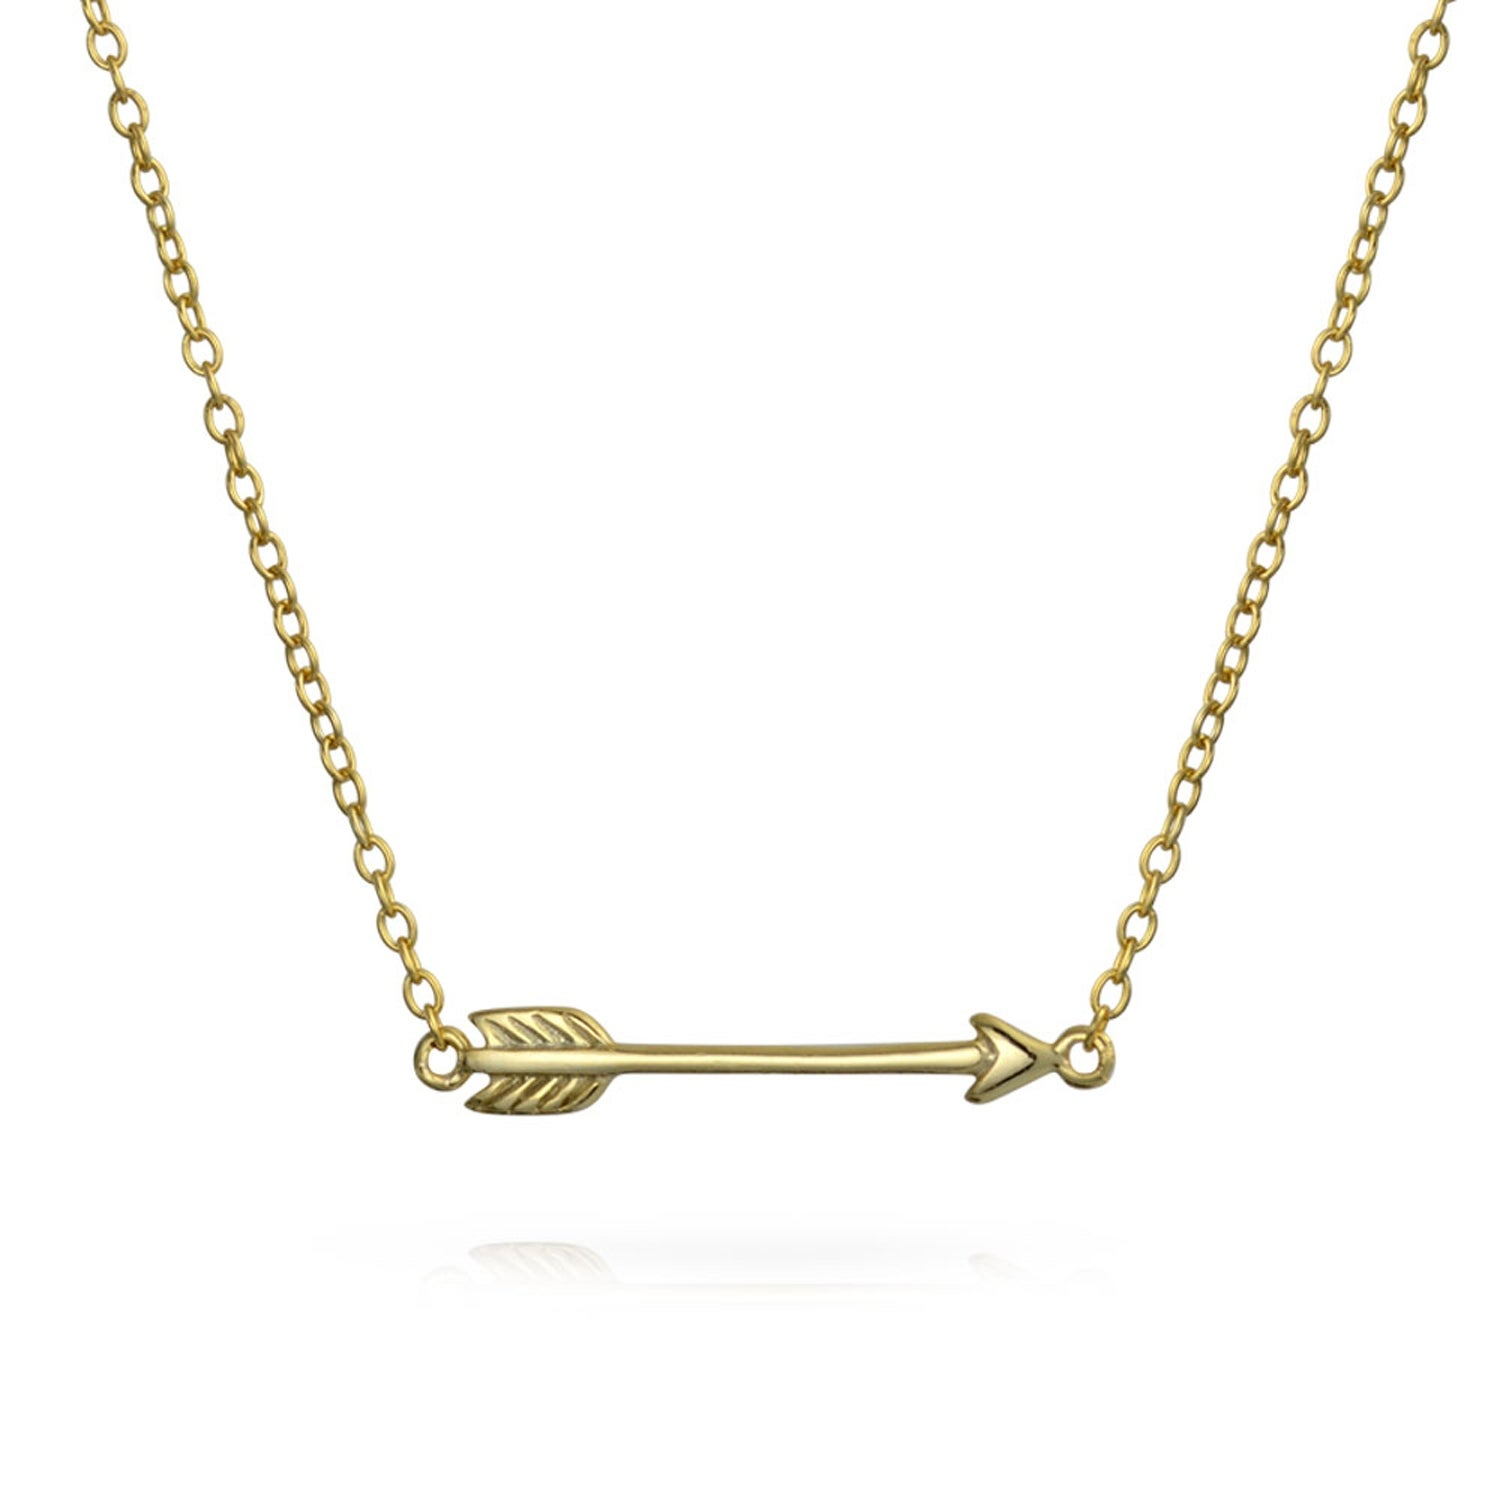 Set Of 2 Sideways Arrows Pendants Shinny 14K Gold Plated 925 Sterling Silver Necklace For Women For Teens 14 16 Inch Regarding Most Popular Arrow Of Cupid Dangle Charm Necklaces (View 18 of 25)